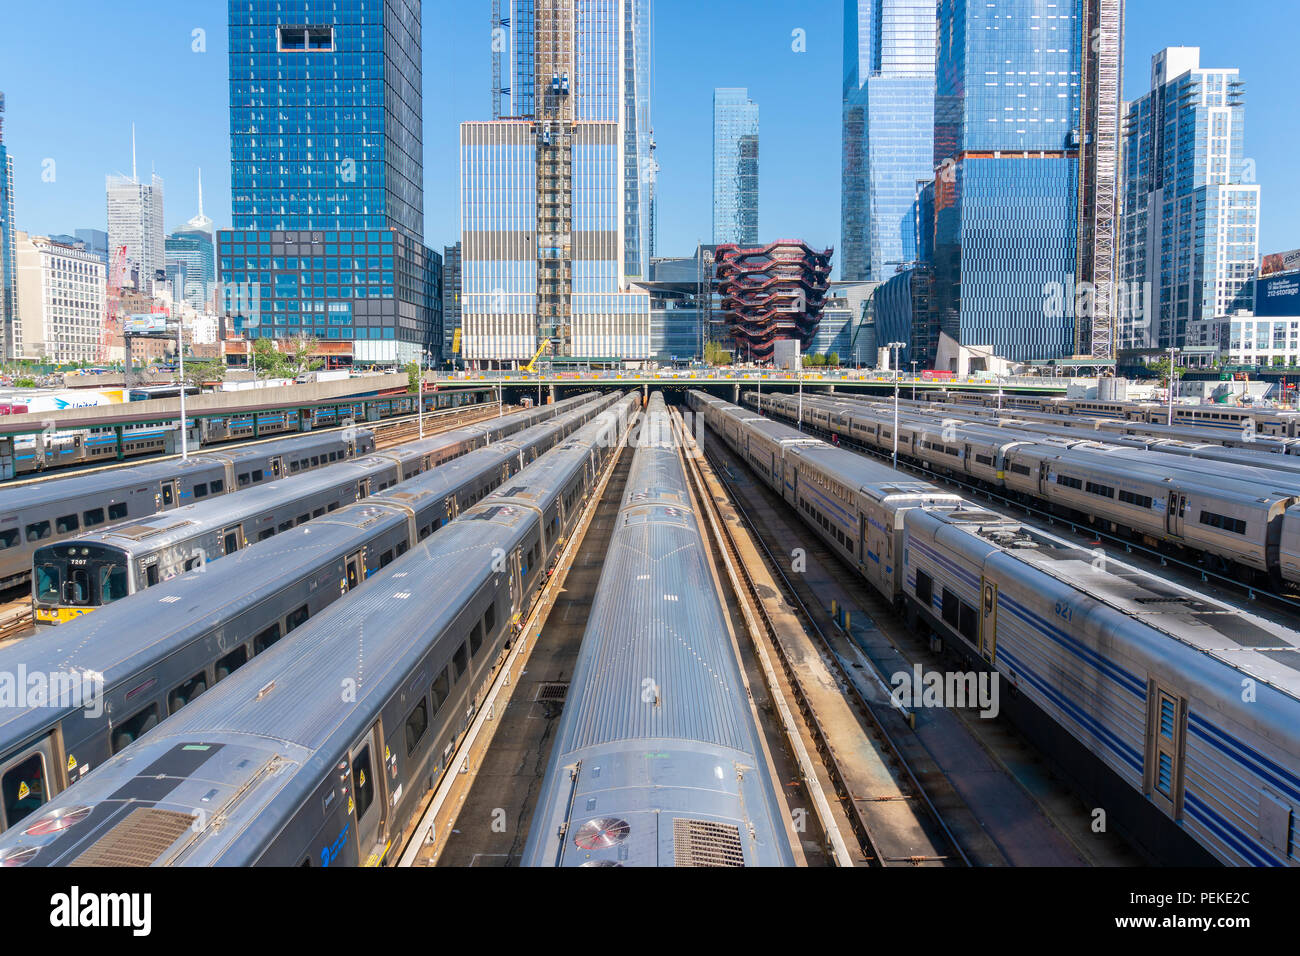 Trains in the Hudson Yards and Manhattan skyline - Stock Image